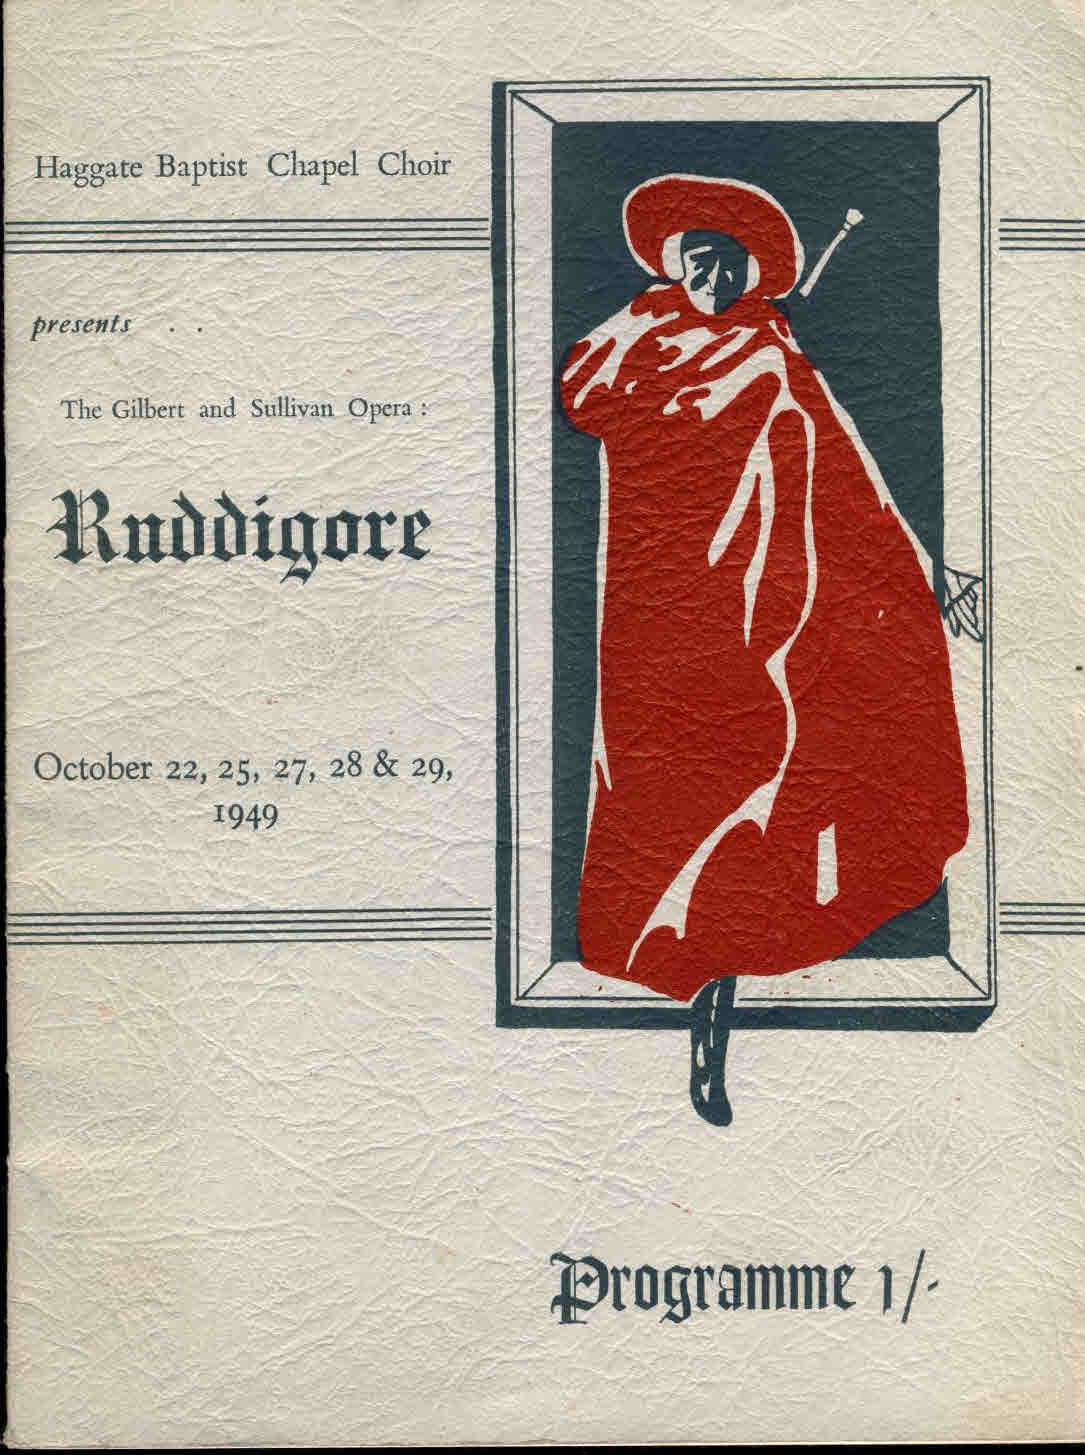 1949 Haggate Baptist Chapel Choir RUDDIGORE theatre programme refS7-box1 19cm x 25 cm approx. This is a pre-owned product in good condition for age. Some handling marks. Staples rusting.